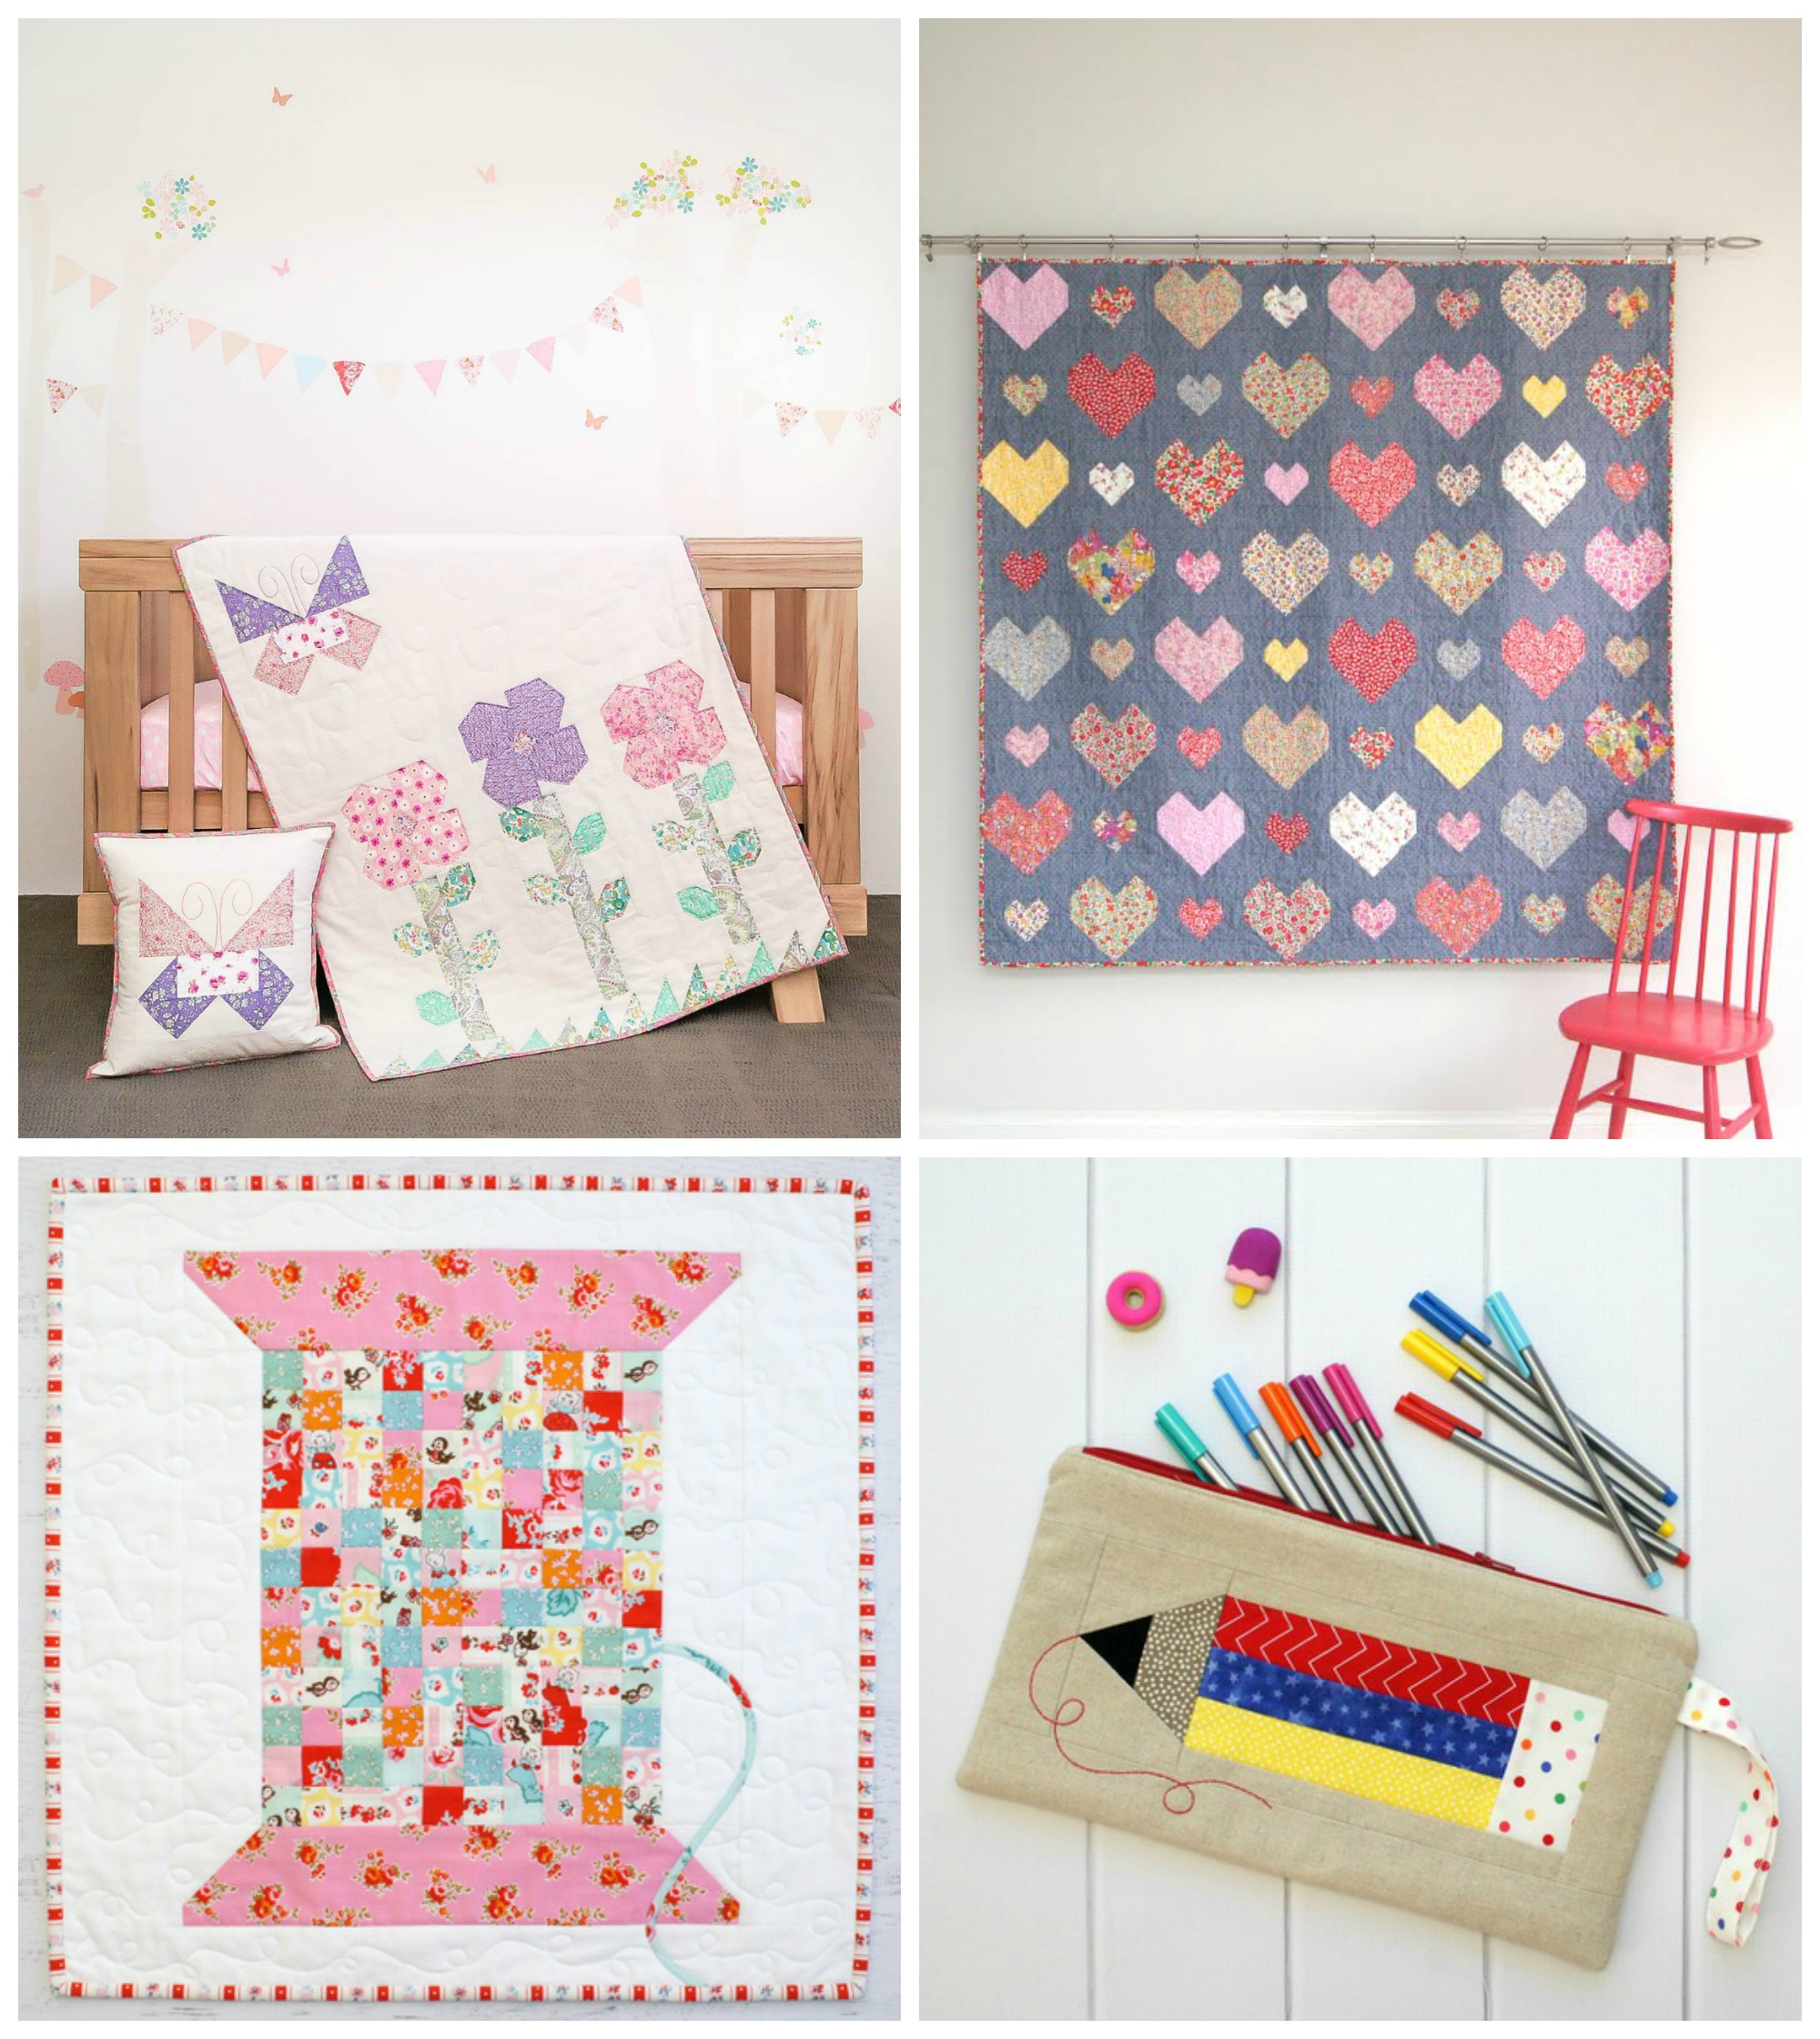 Quilt Patterns by Jemima Flendt of Tied With a Ribbon